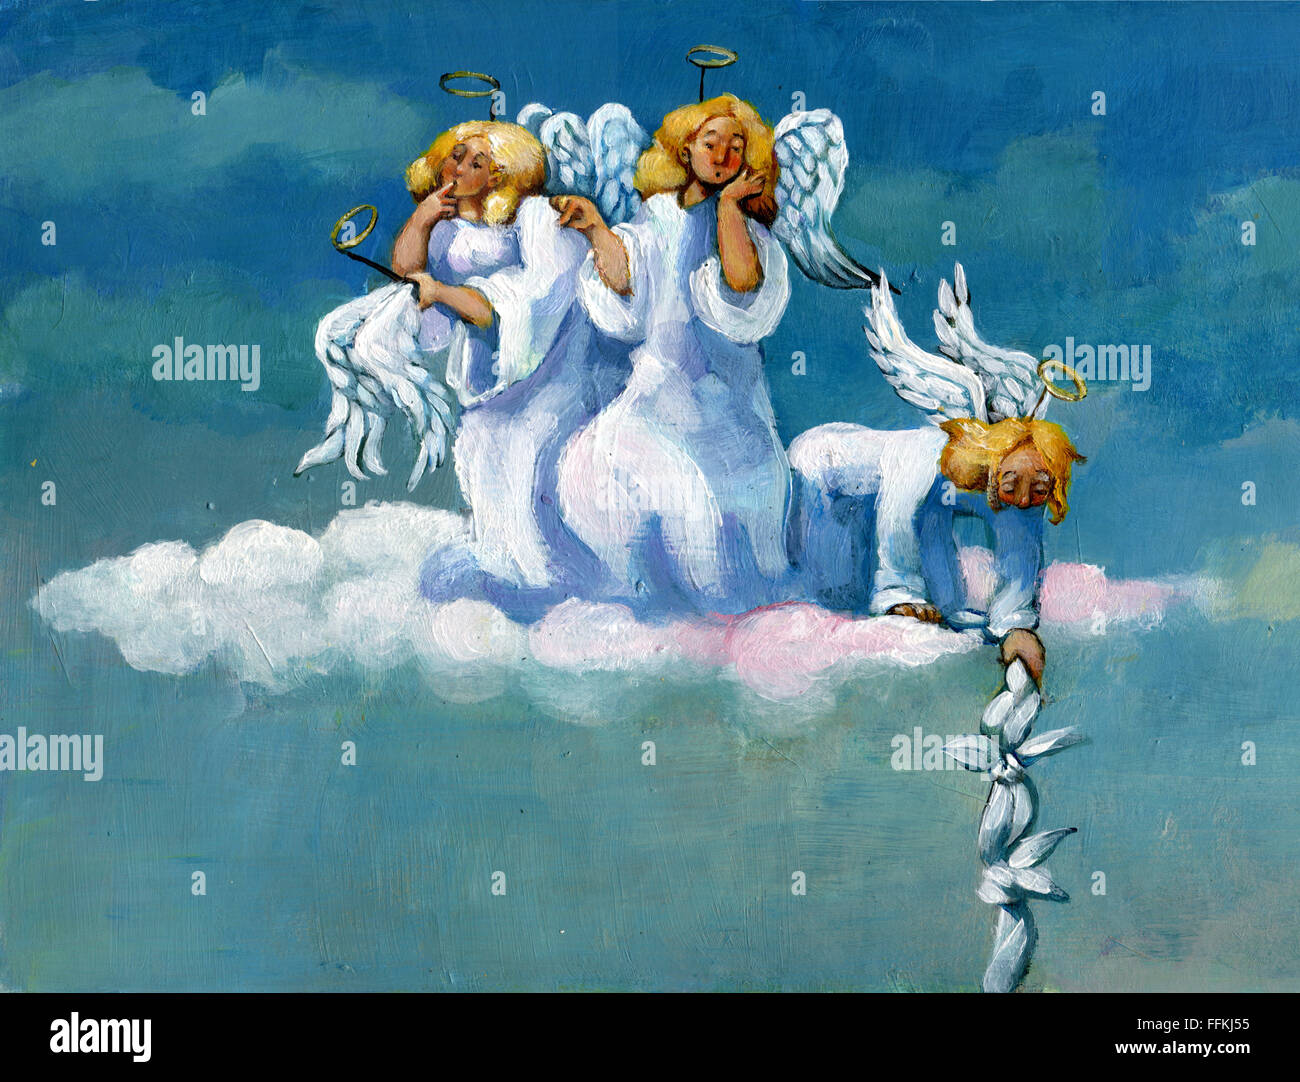 Three angels are questioning the escape of one of their classmates - Stock Image